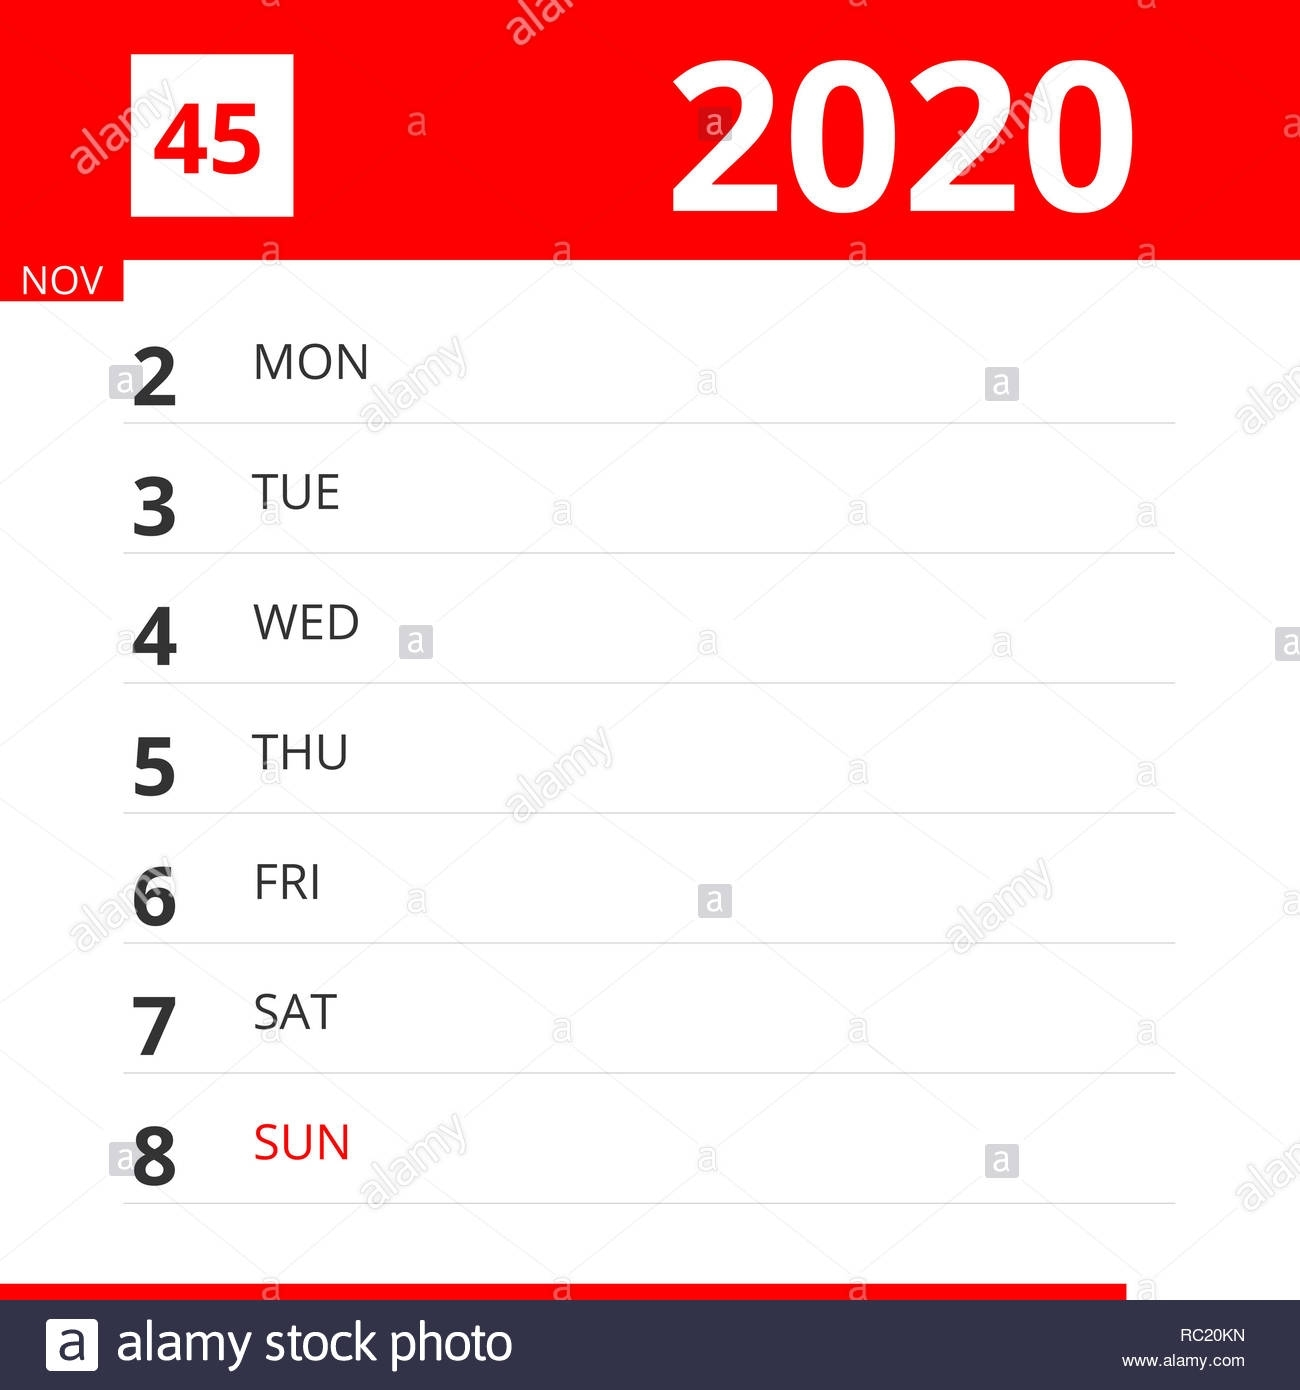 Calendar Planner For Week 45 In 2020, Ends November 8, 2020